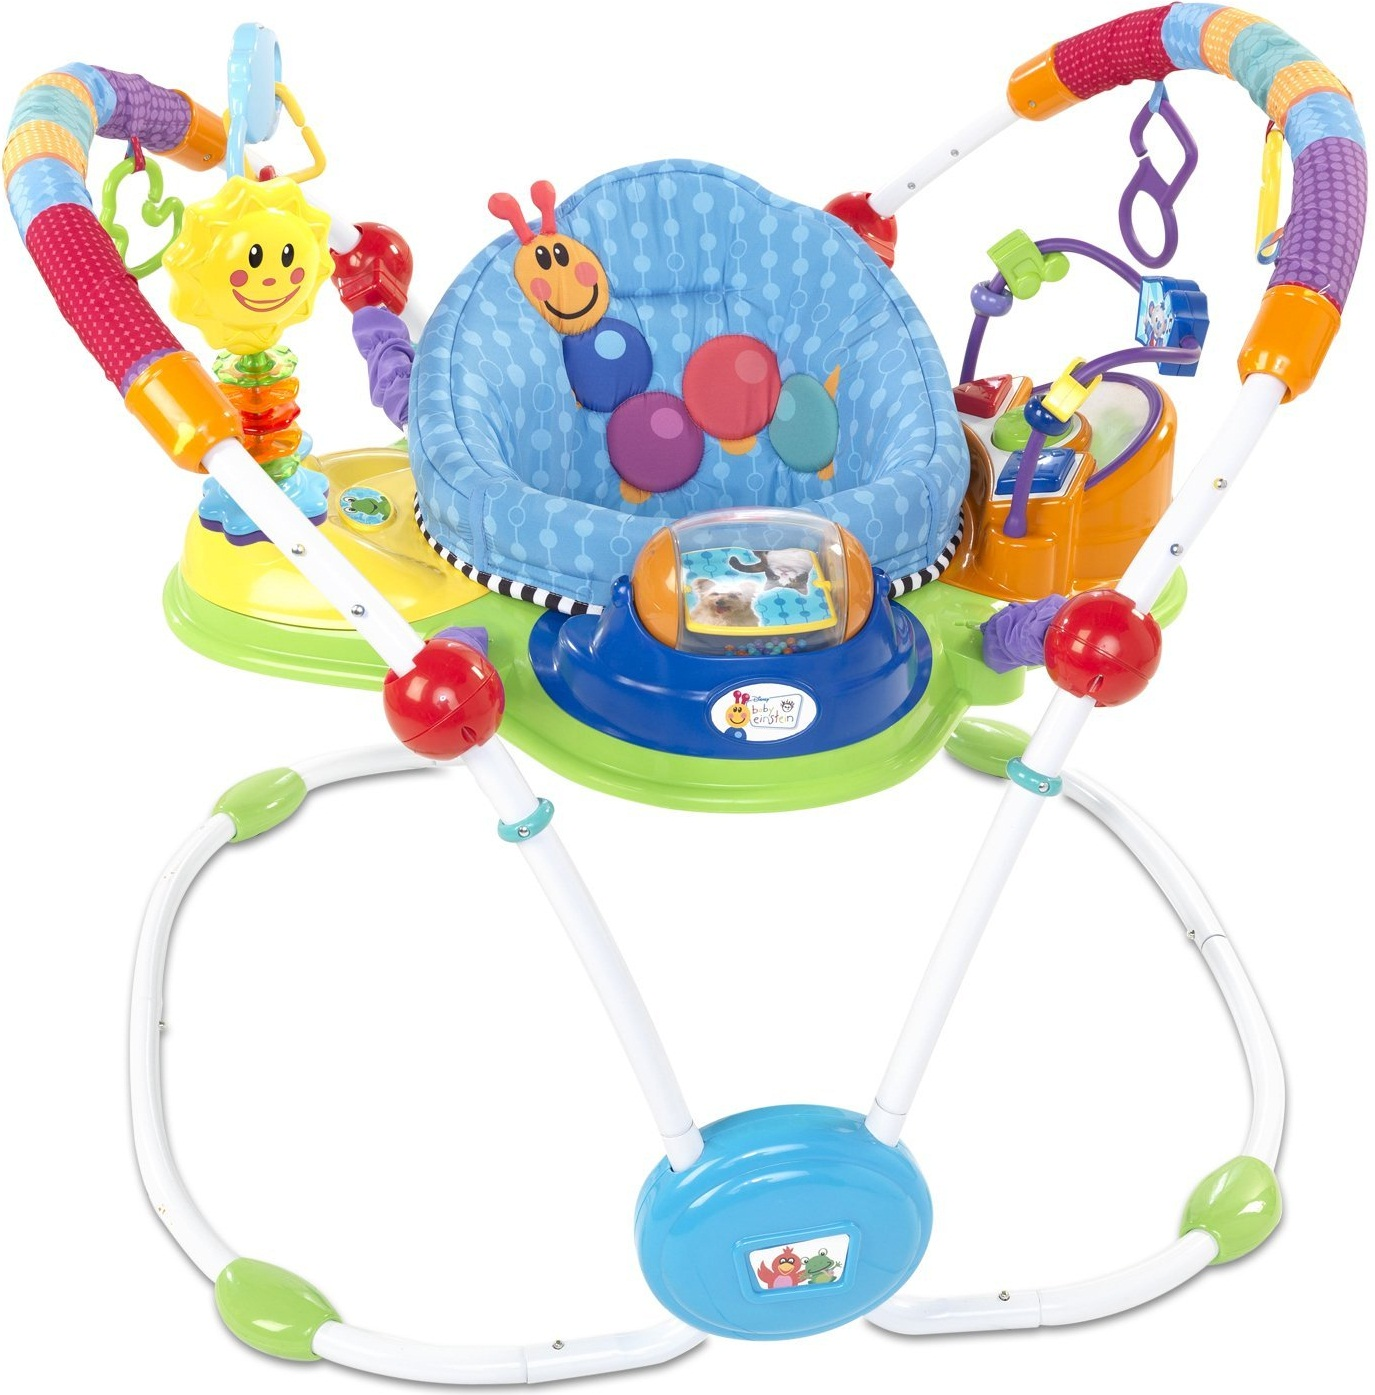 Baby Einstein Musical Motion Activity Jumper Baby Cinema